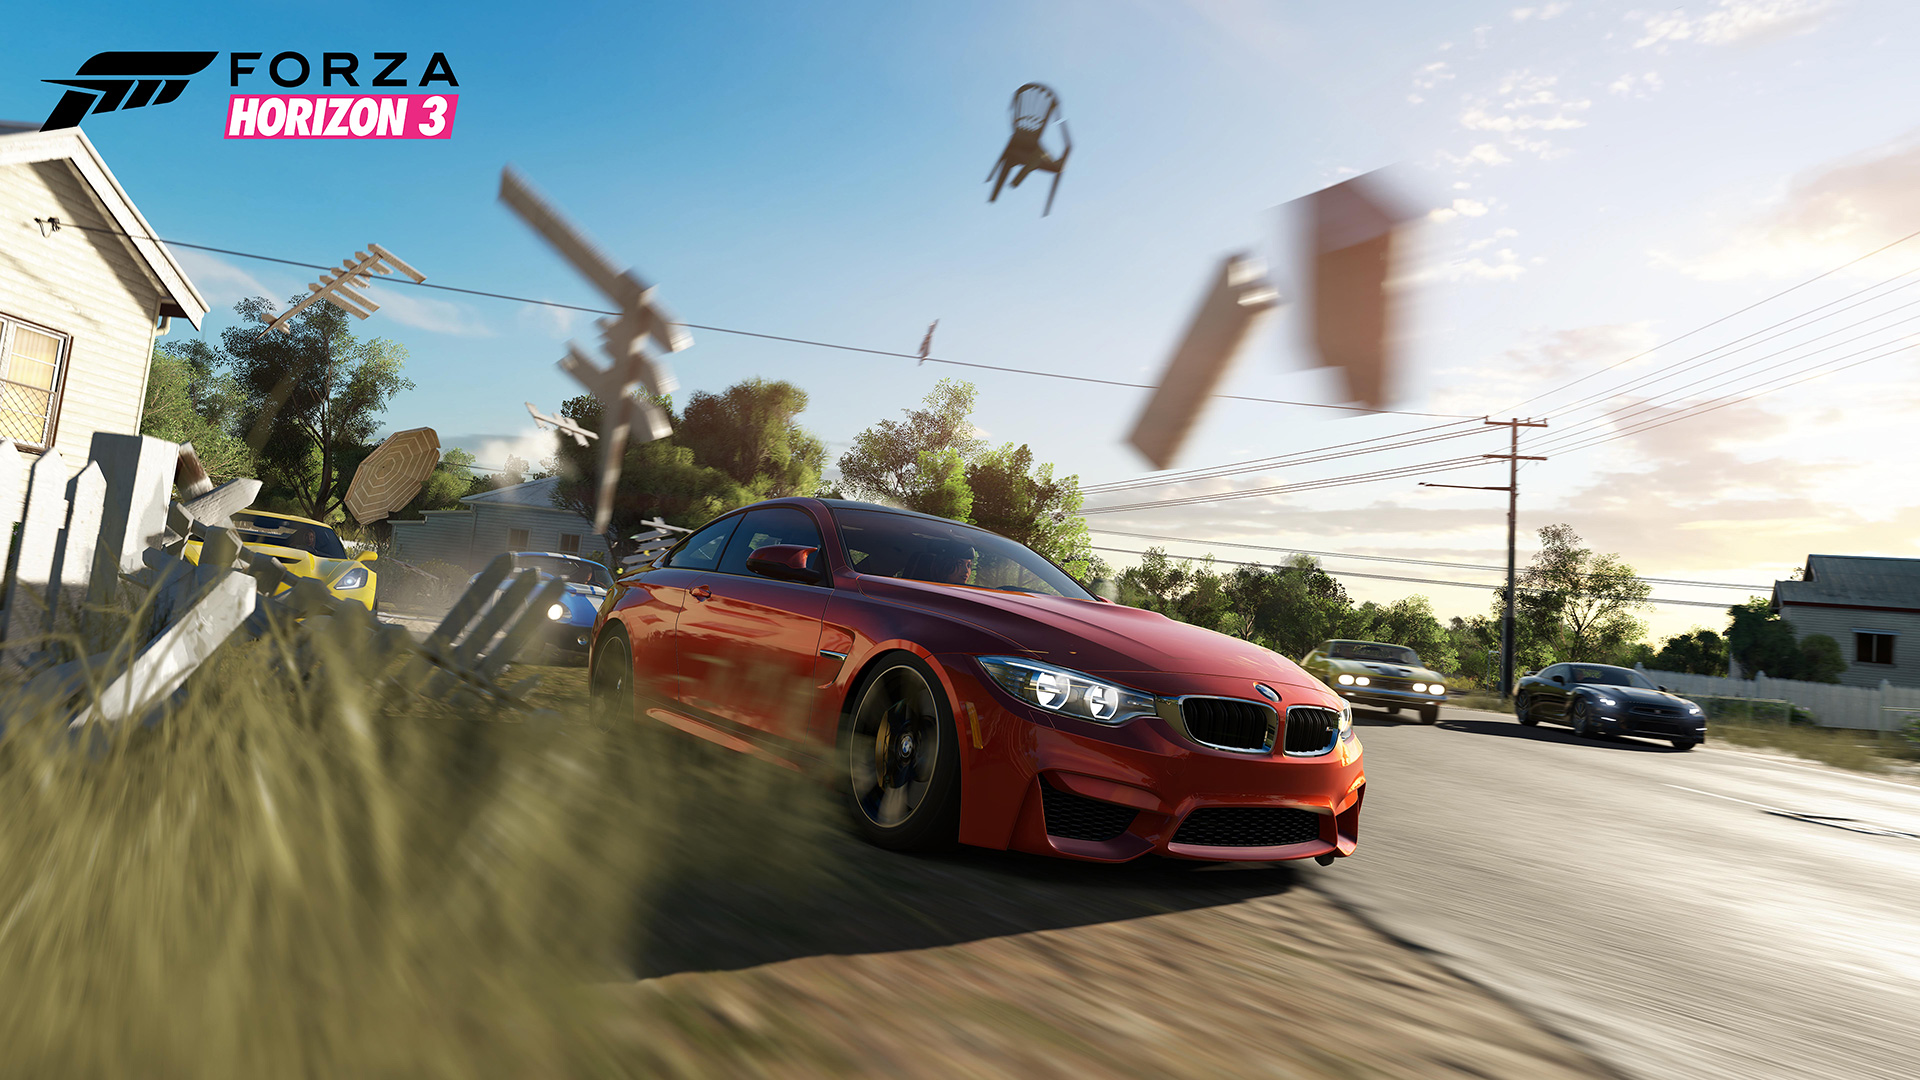 Forza Horizon 3 Xbox One X Update Is Rolling Out Today Adds 4K Resolution Support